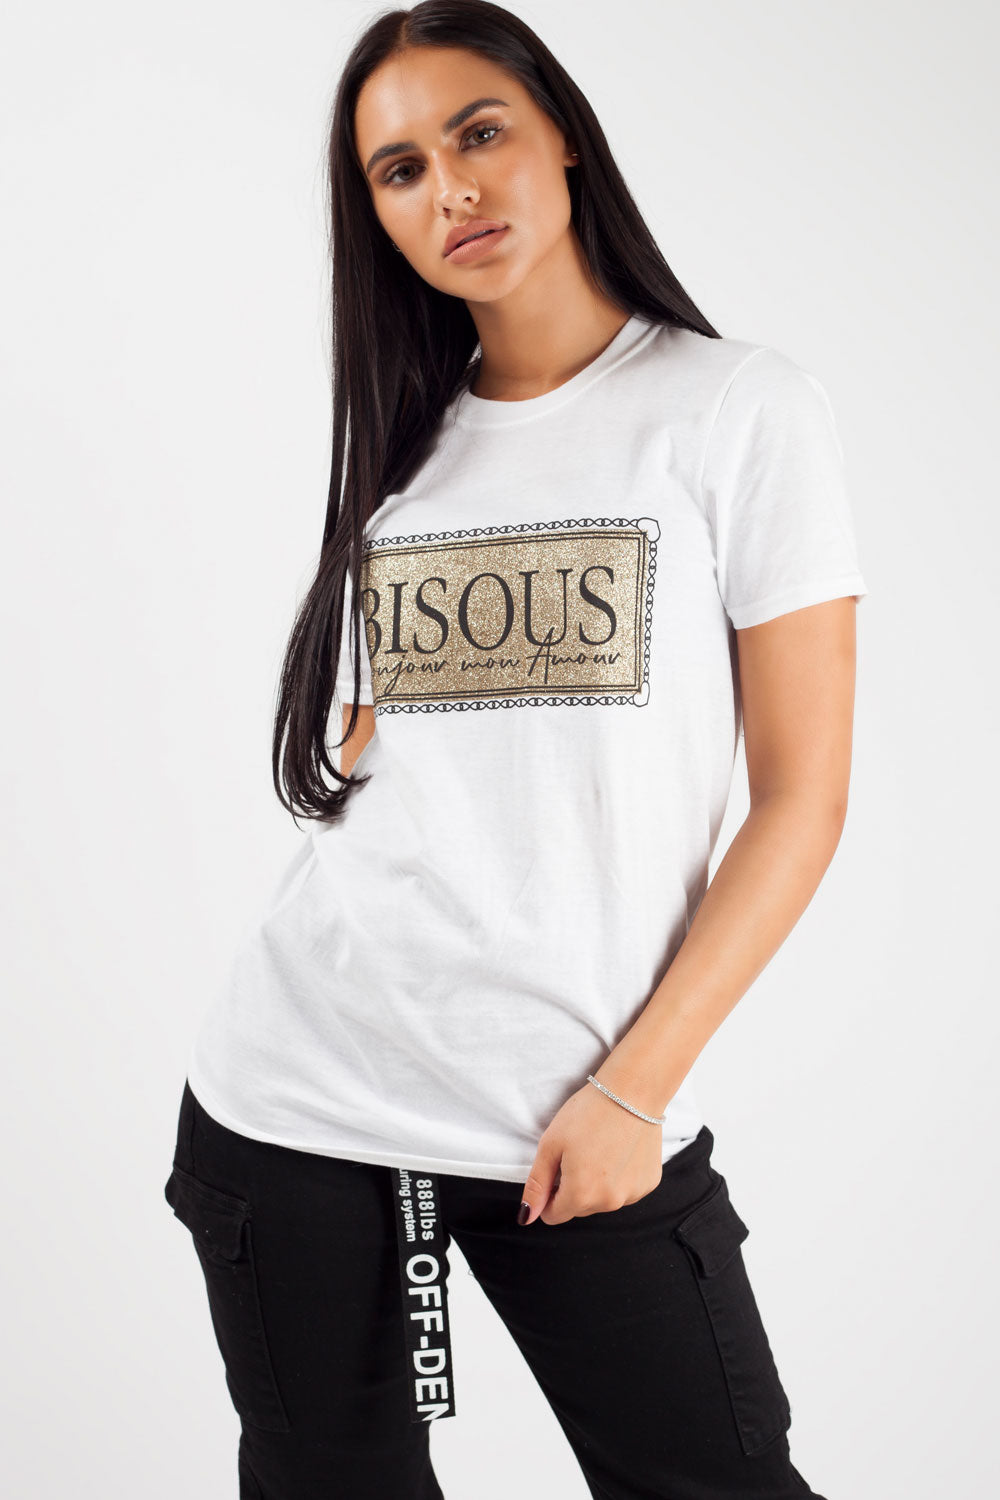 bisous slogan top white